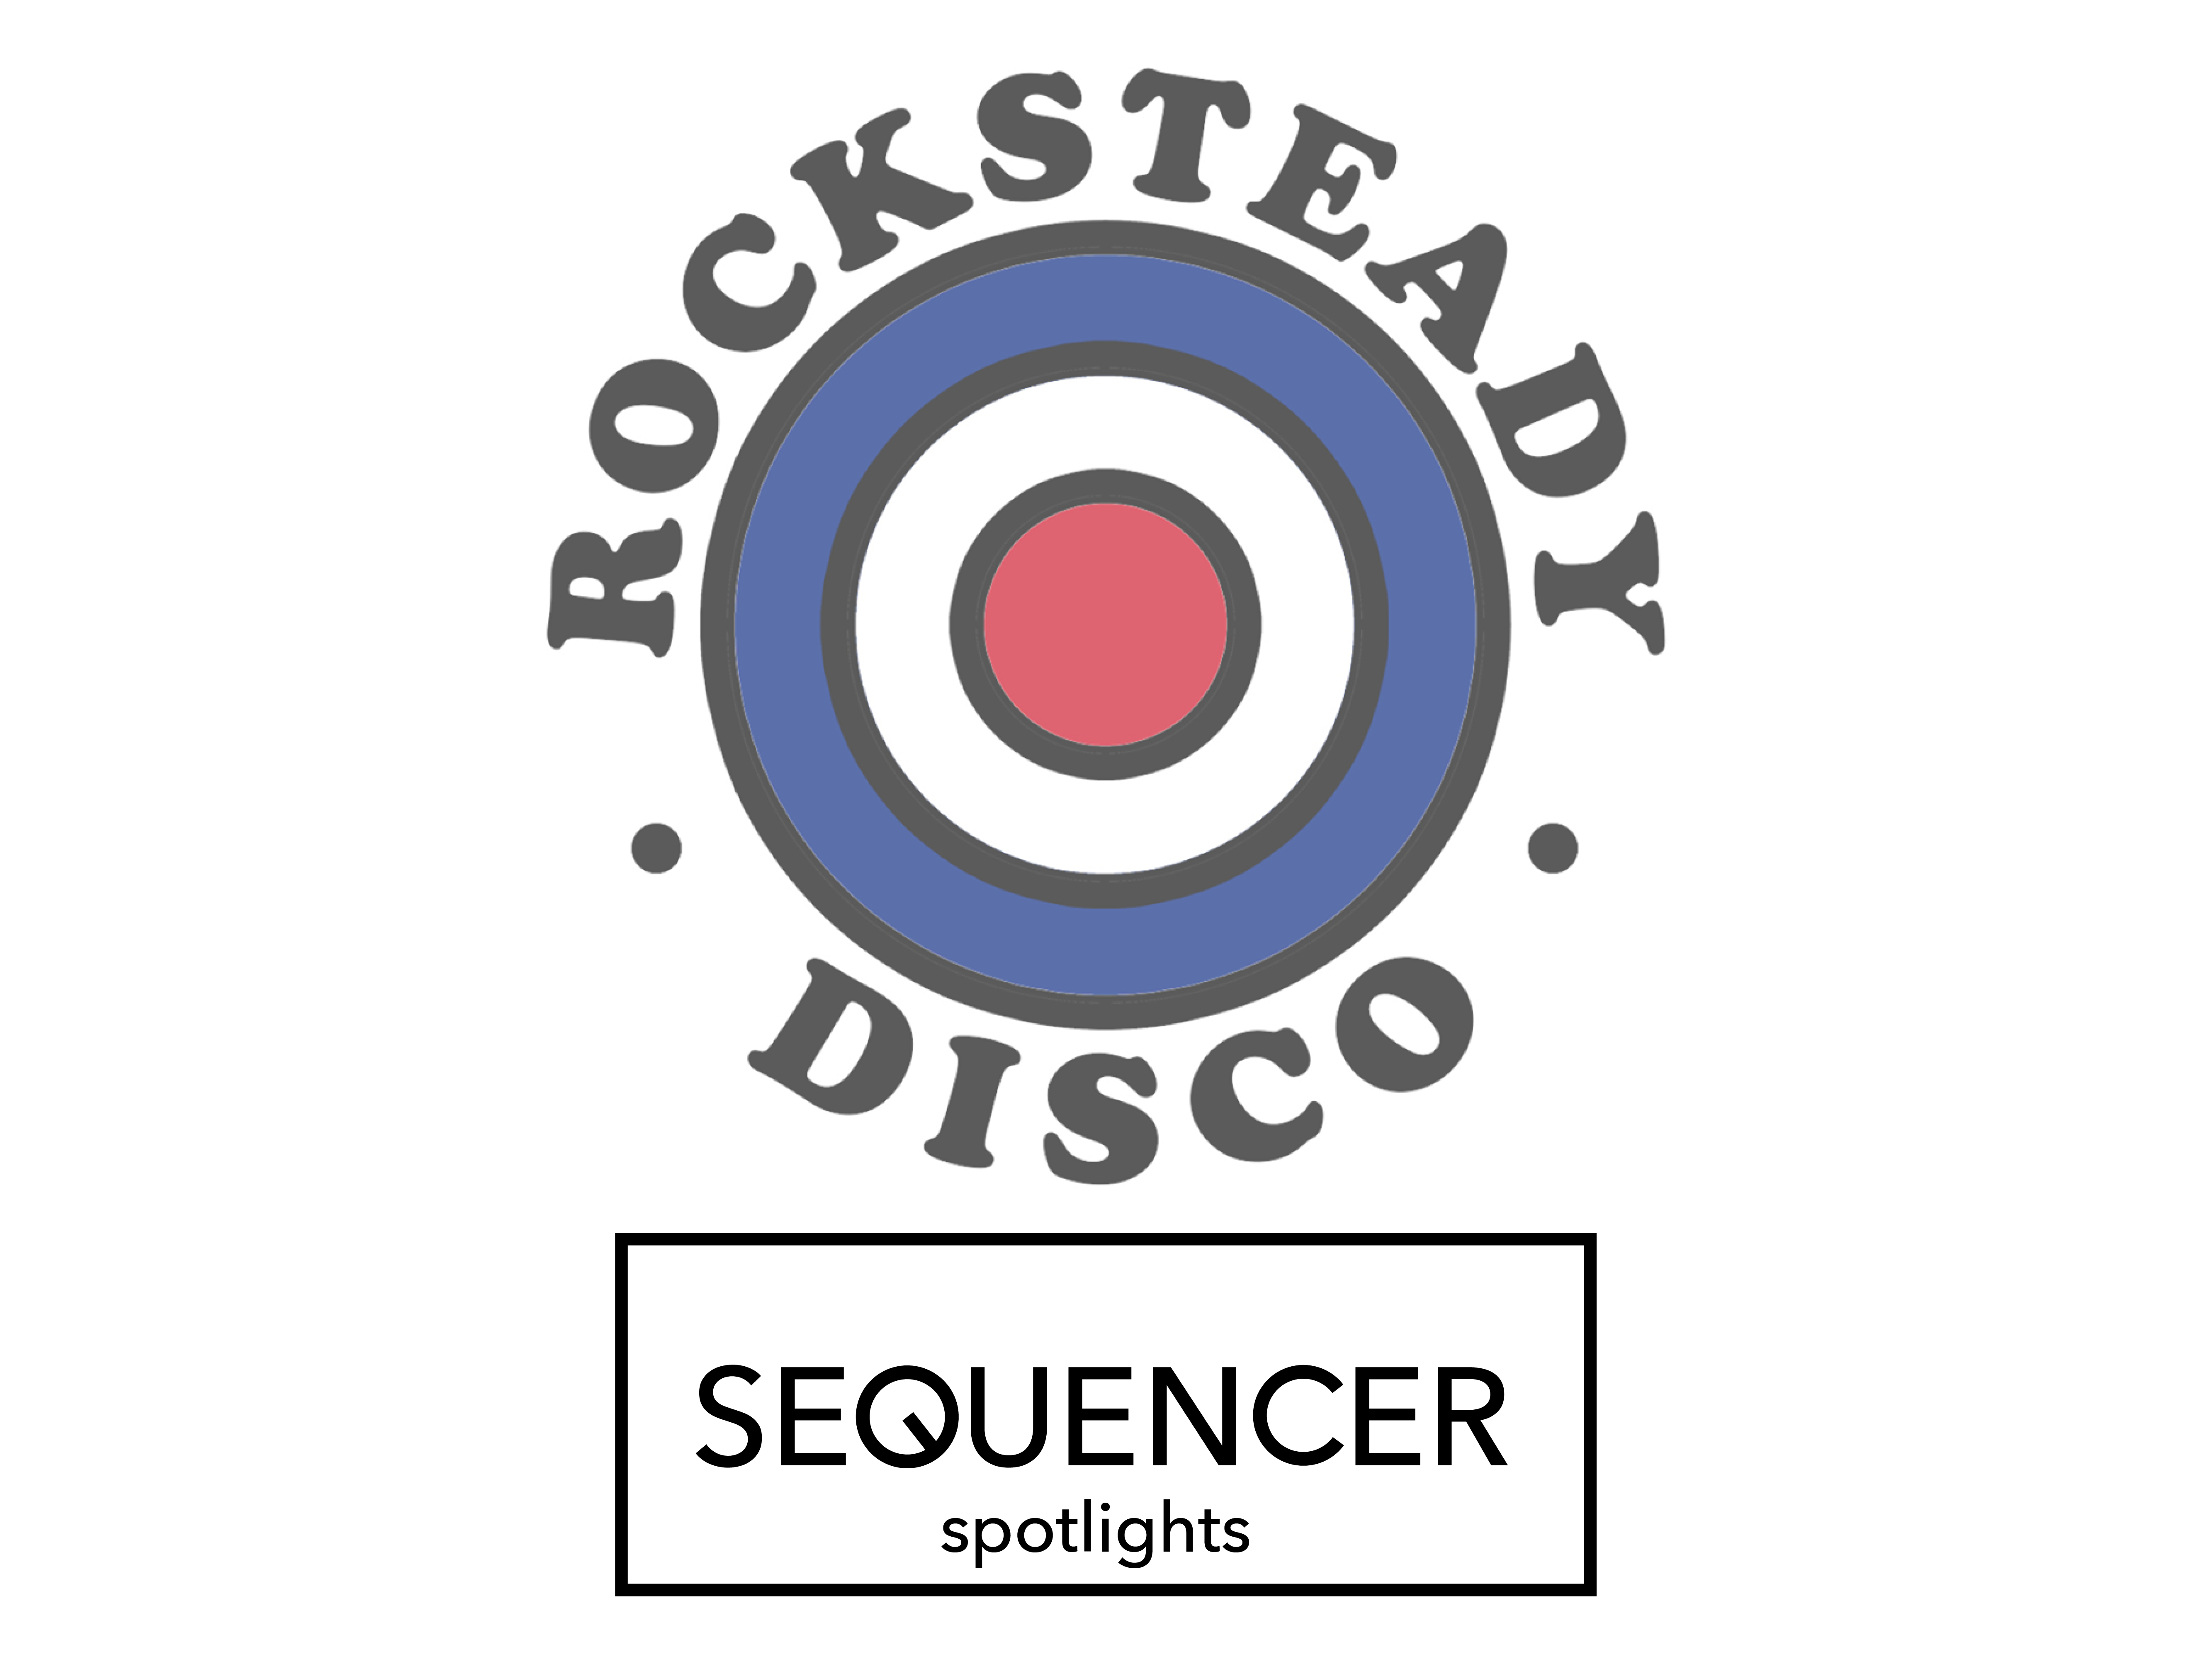 rocksteady disco